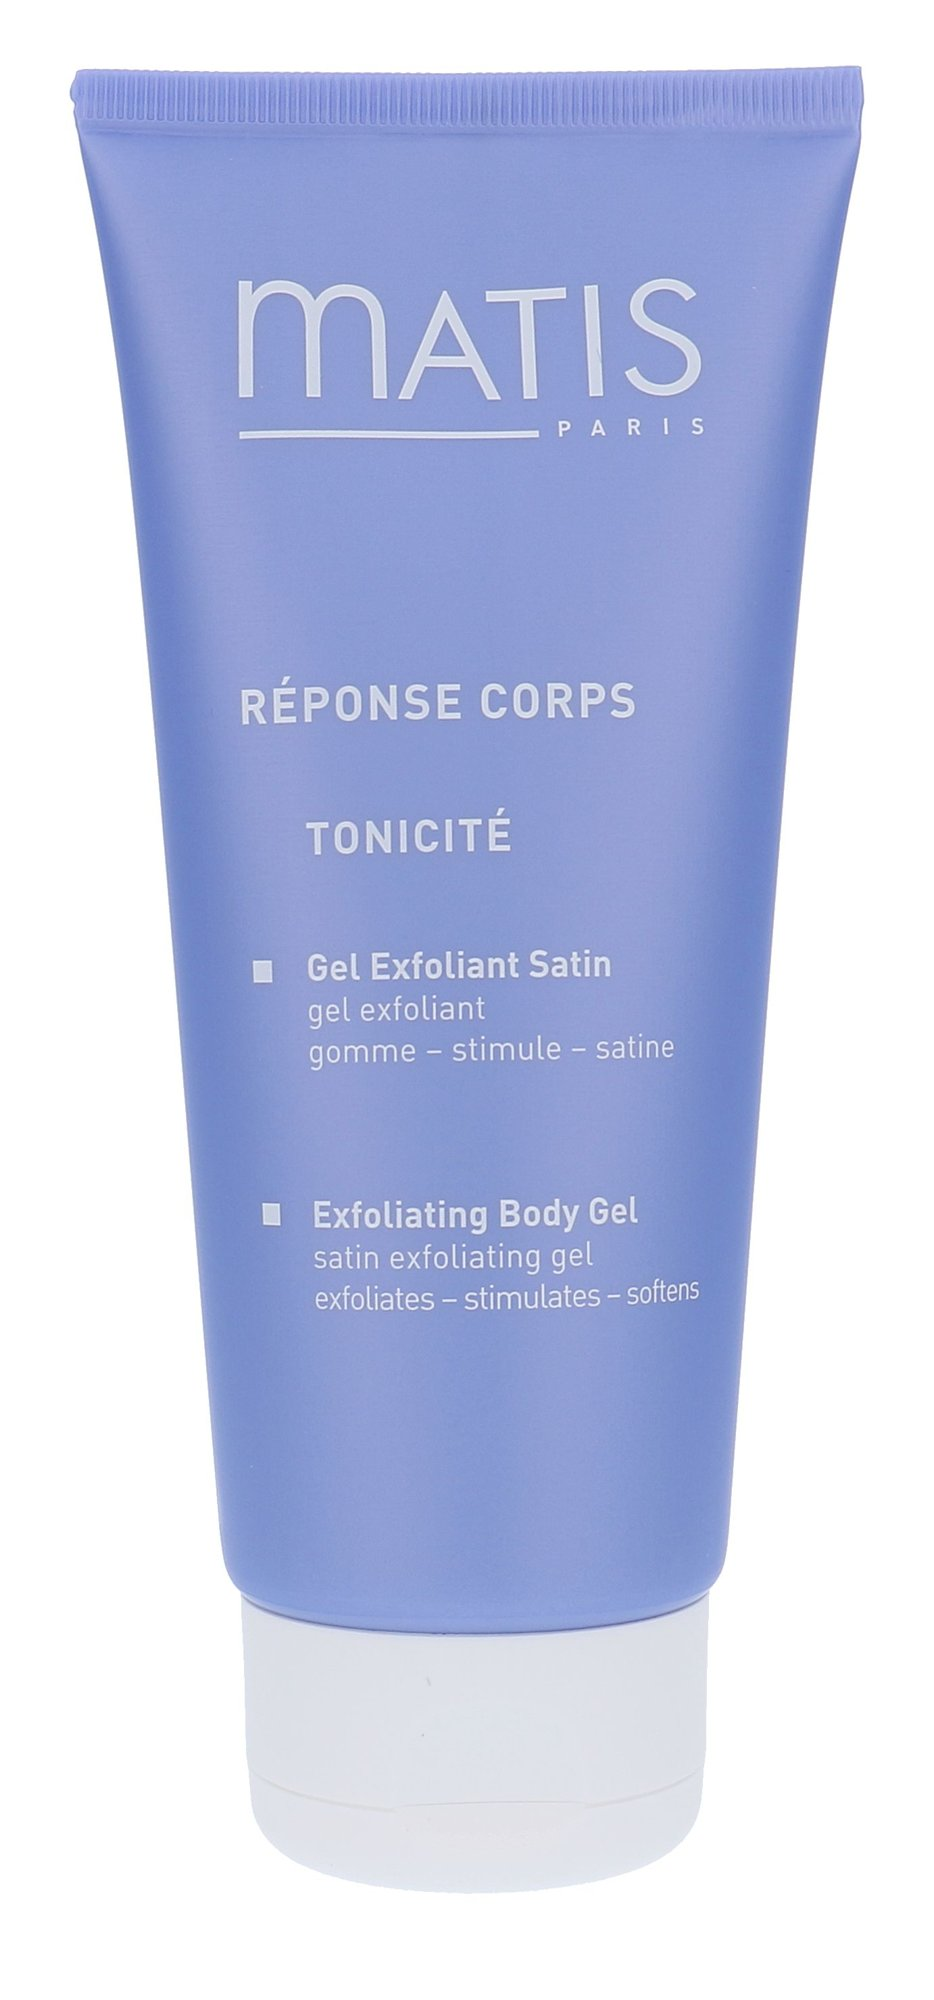 Matis Réponse Corps Cosmetic 200ml  Tonicité Exfoliating Body Gel